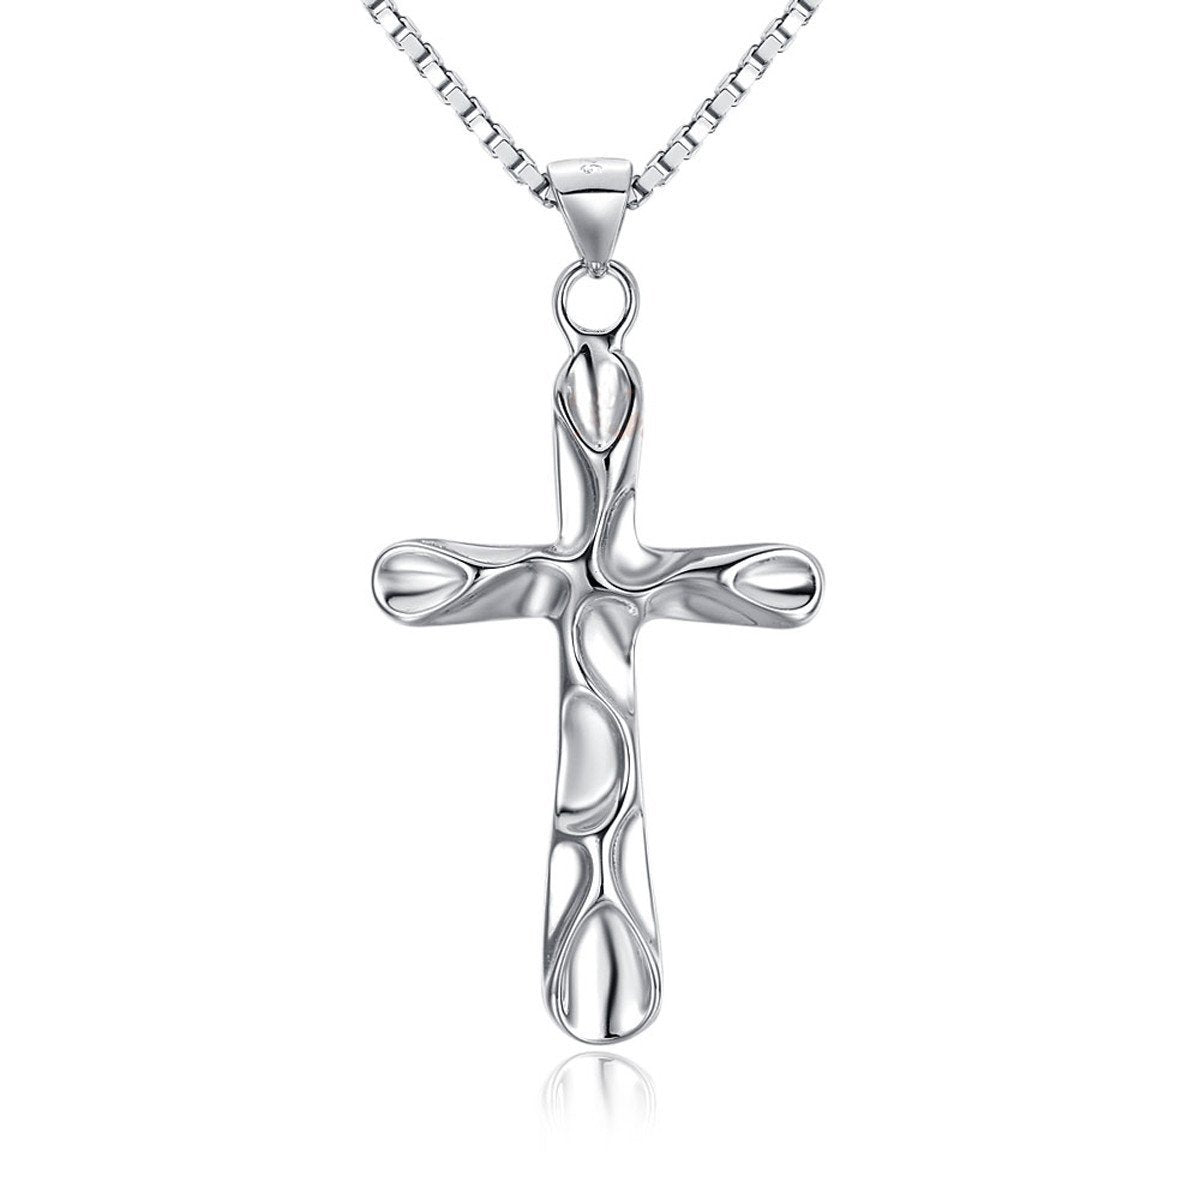 Jewelry Trends Sterling Silver Cross Pendant with Sculpted Design on 18 Inch Box Chain Necklace